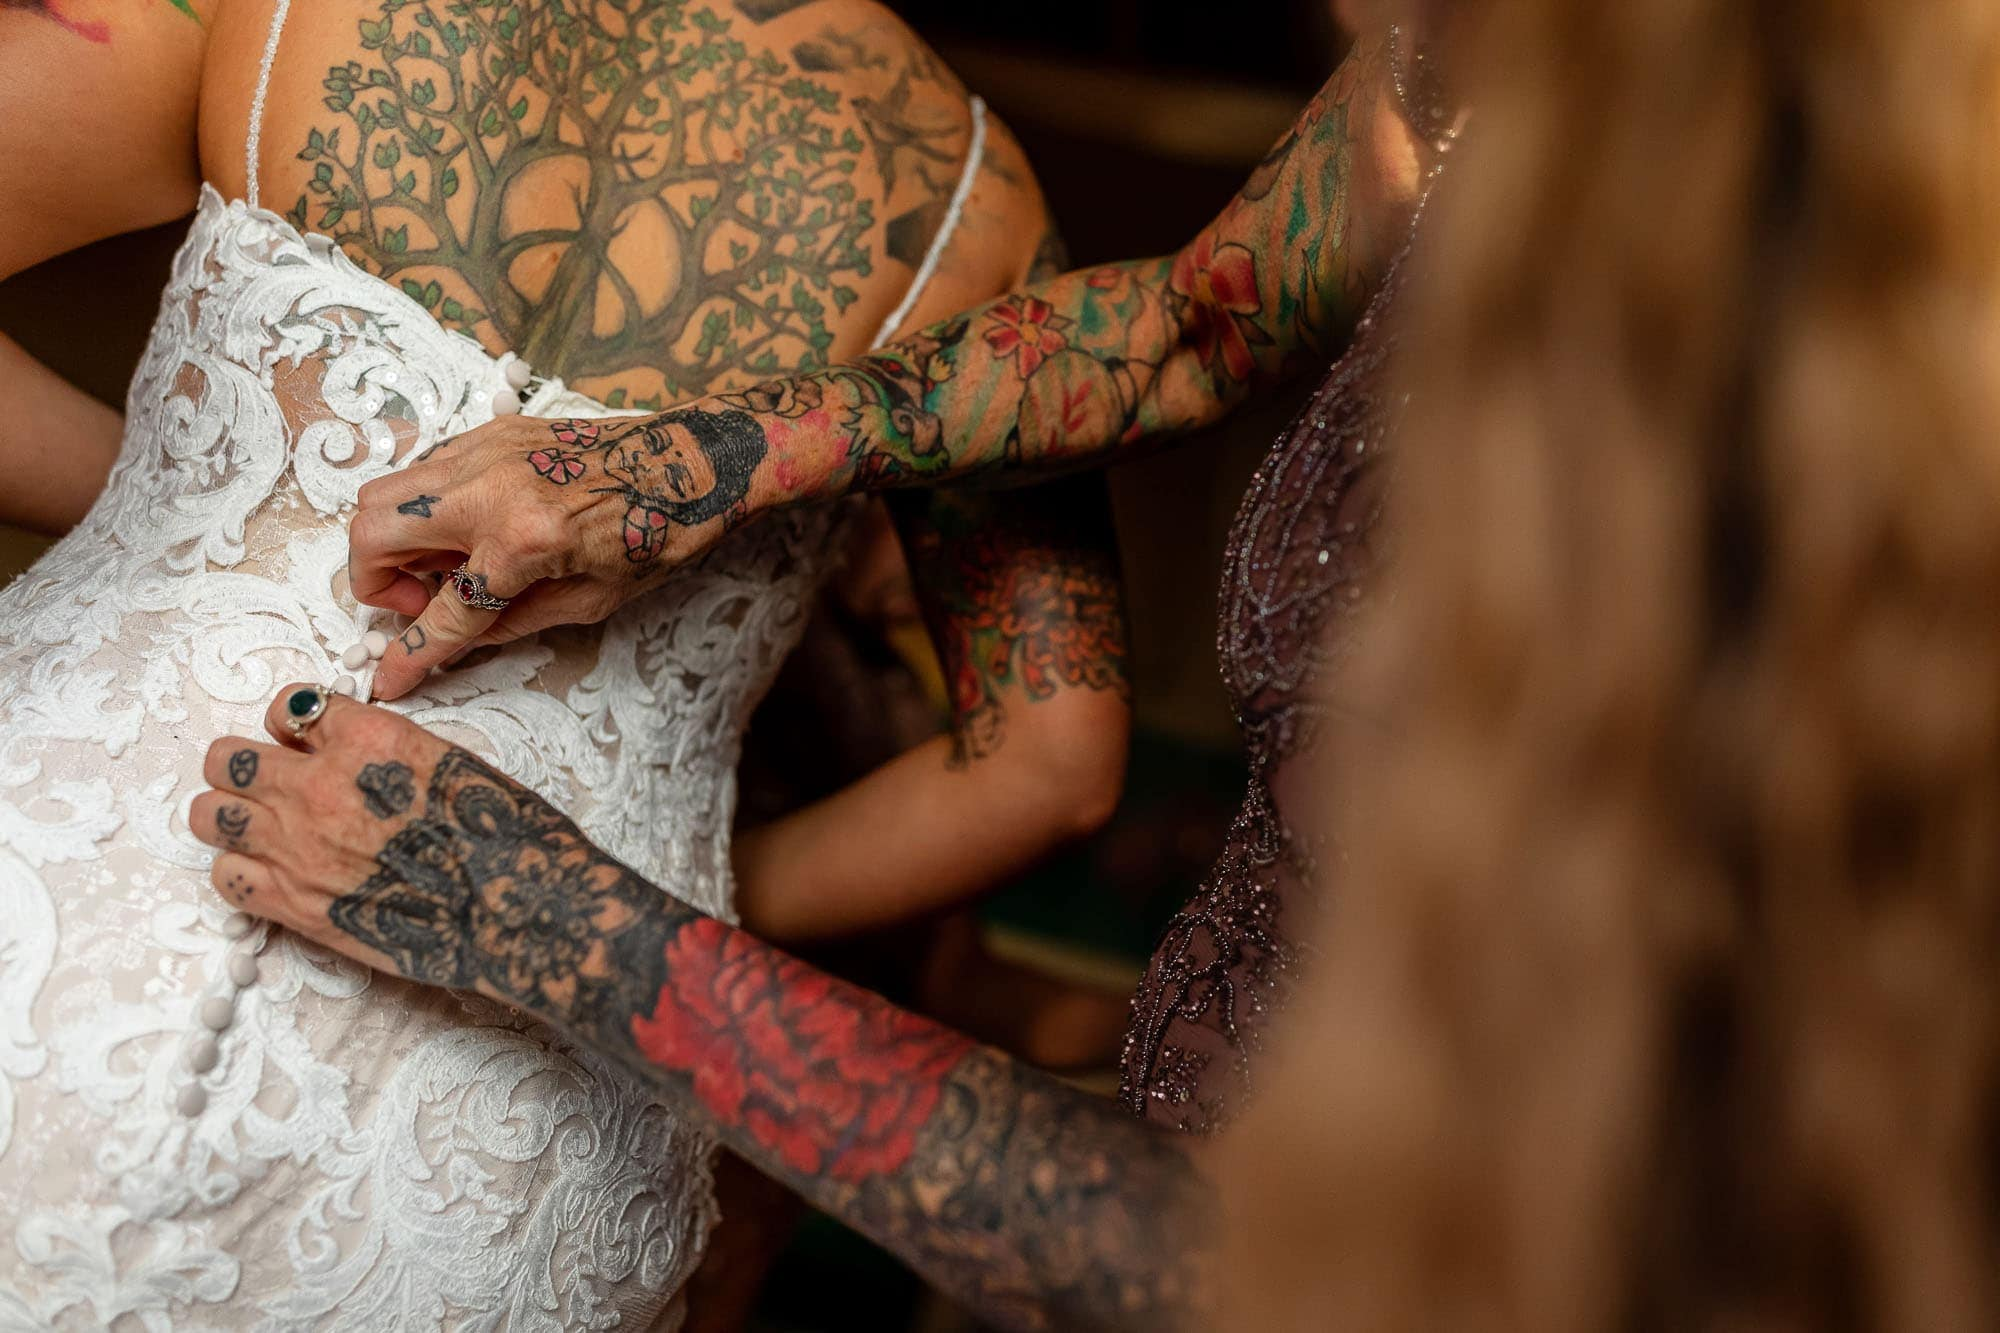 Mother's tattooed arms as she buttons up the back of the tattooed bride's dress